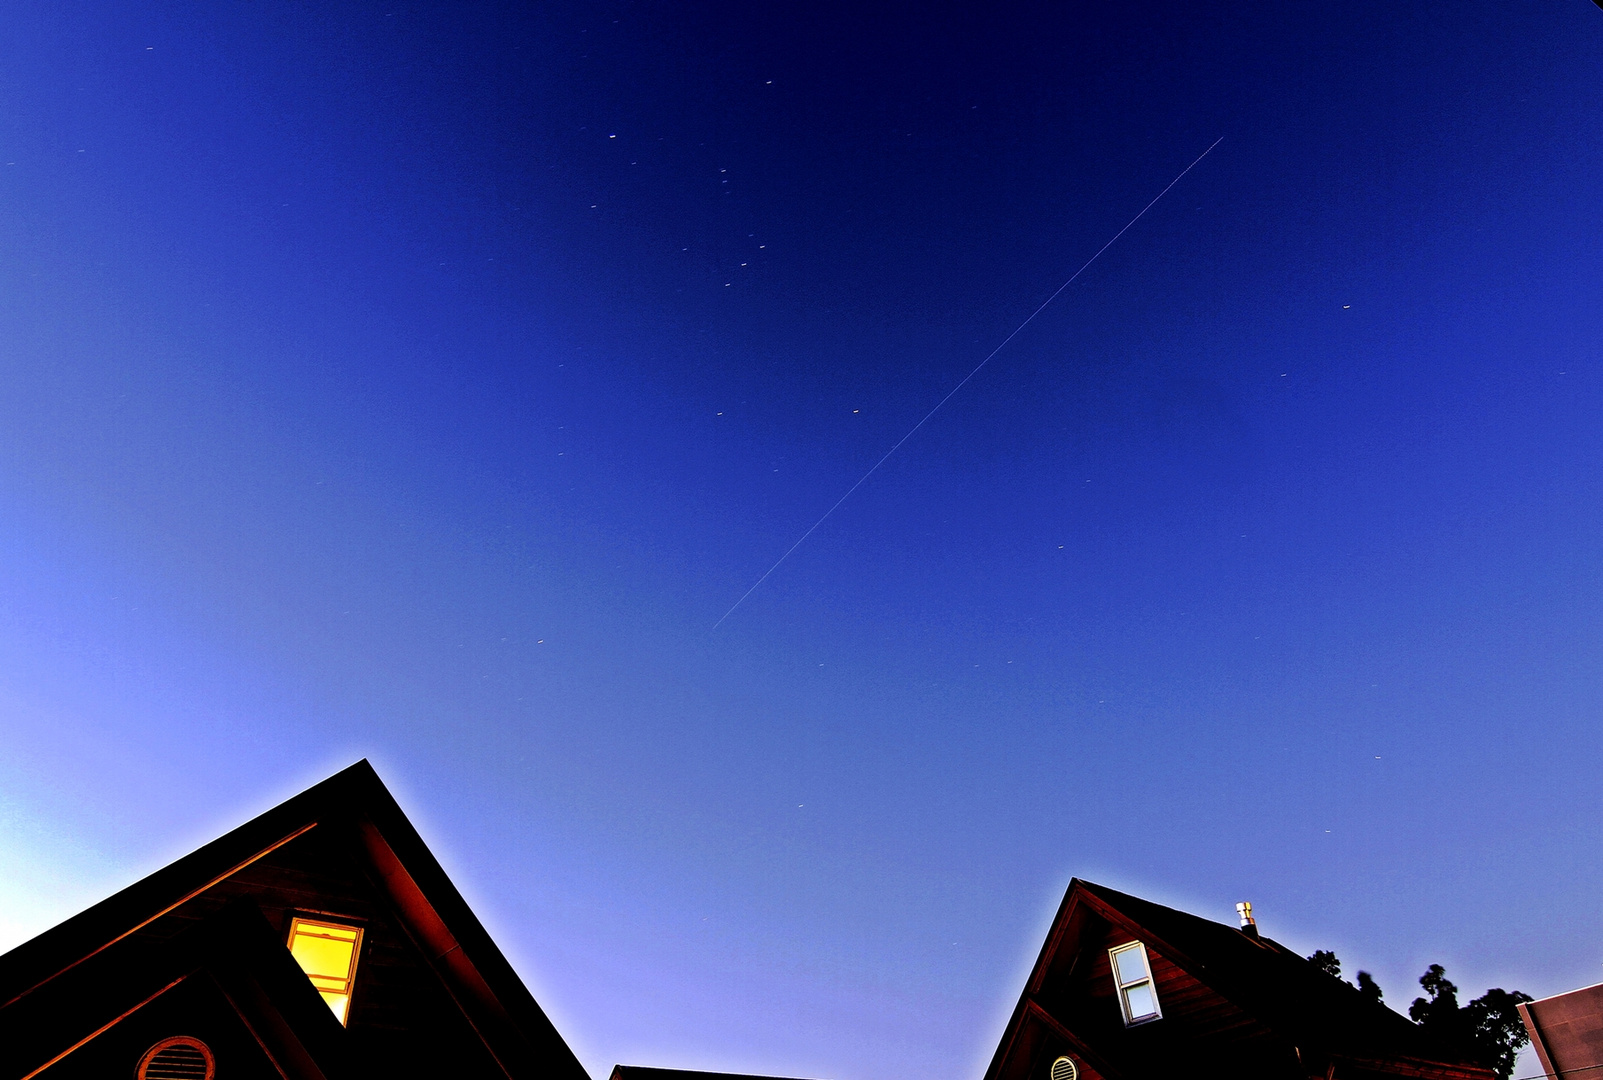 The ISS is that thin line on the sky..It took 75 secs in BULB Iso 100 F.13 lens 10mm